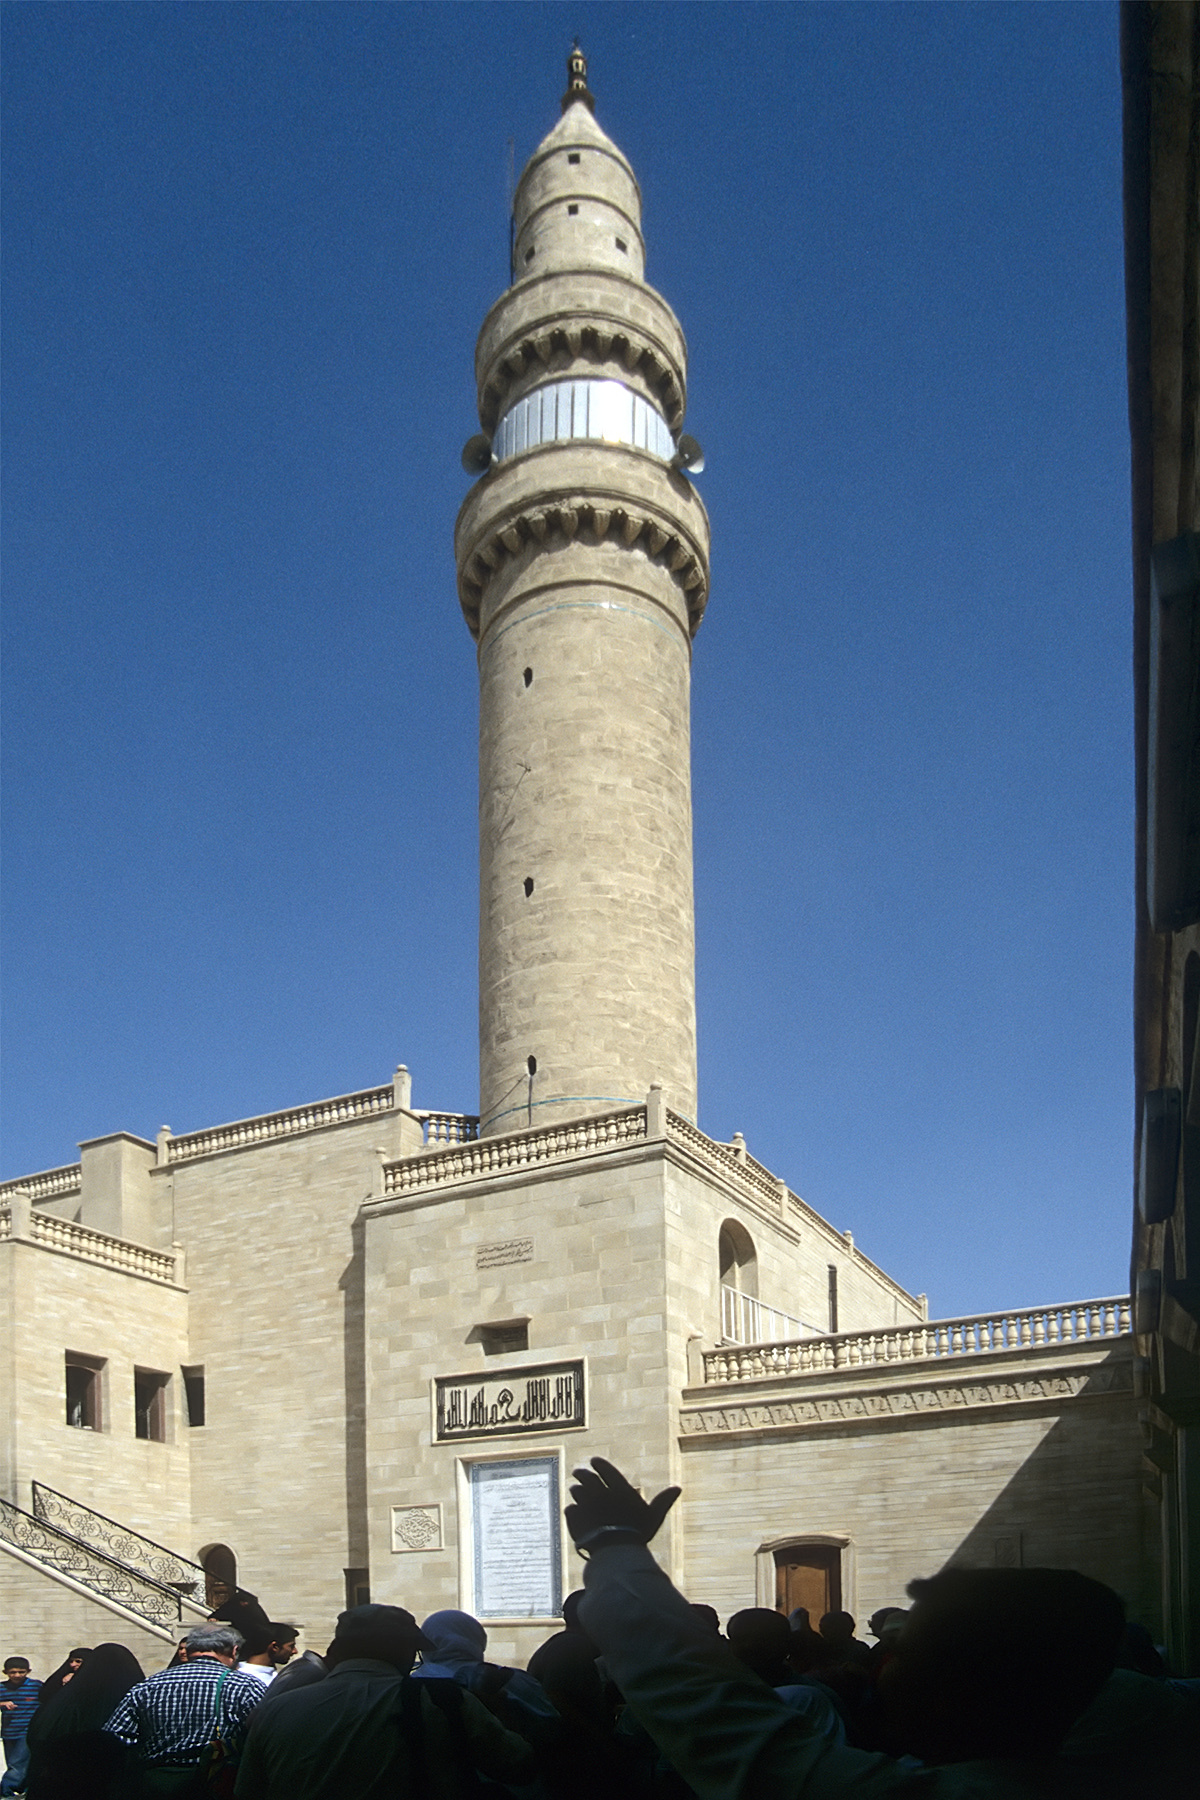 A mosque in Mosul, Iraq dedicated to the biblical figure Jonah that ISIS destroyed, prompting protests from the local population. Via wikimedia.